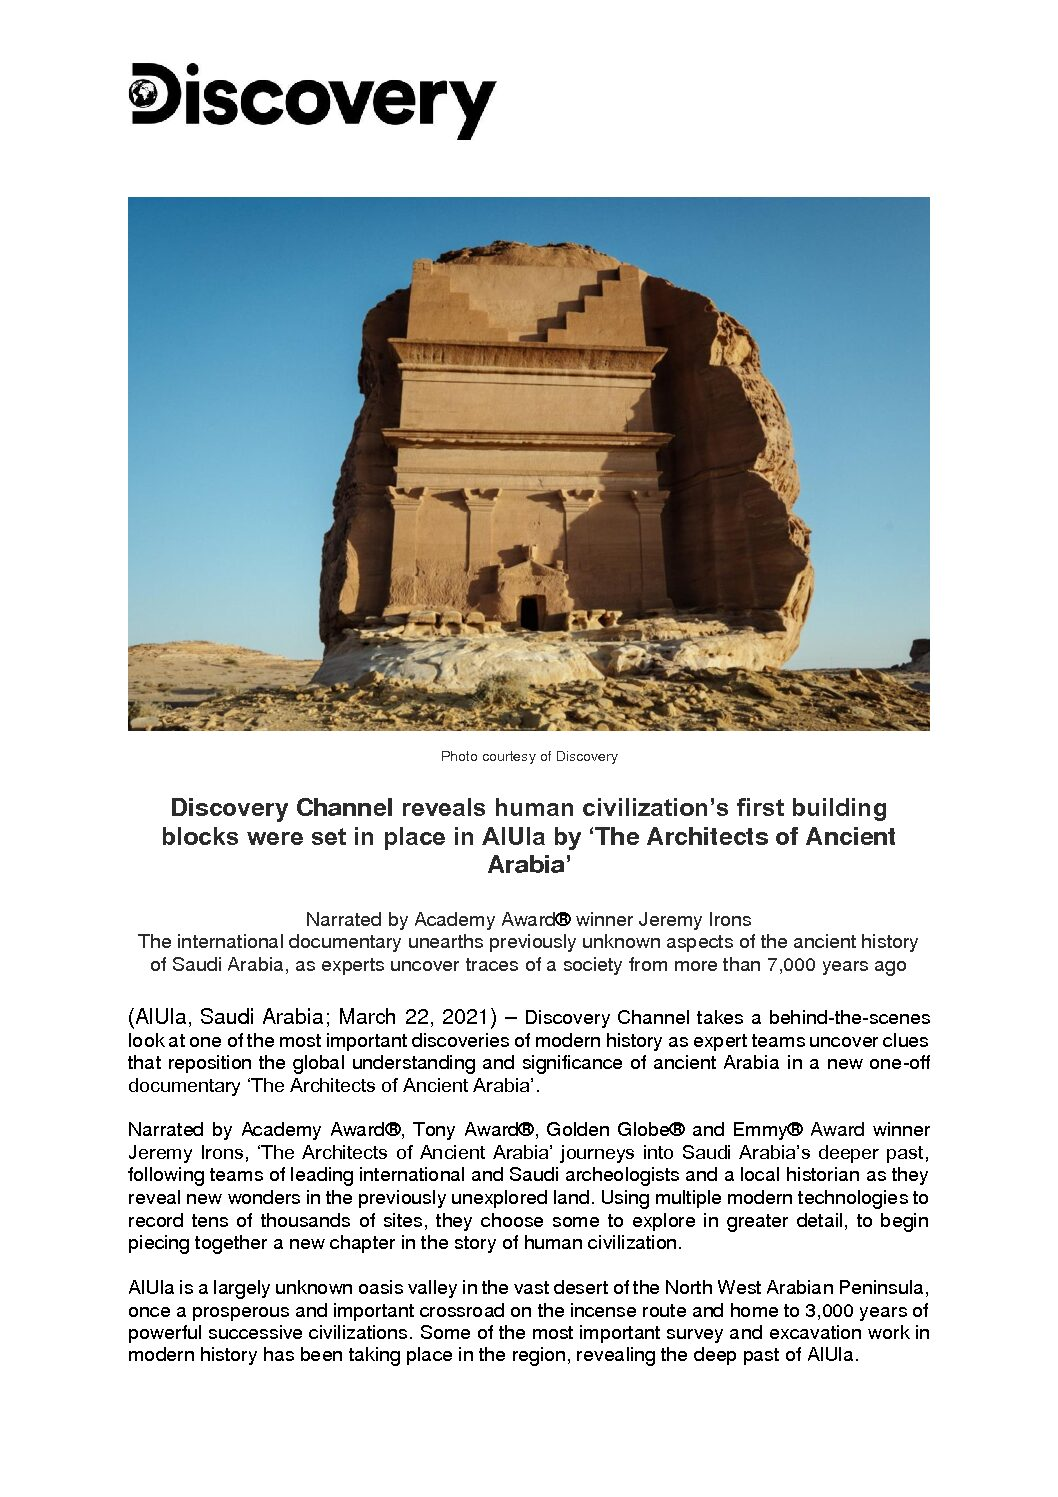 Architects of Ancient Arabia Press Release